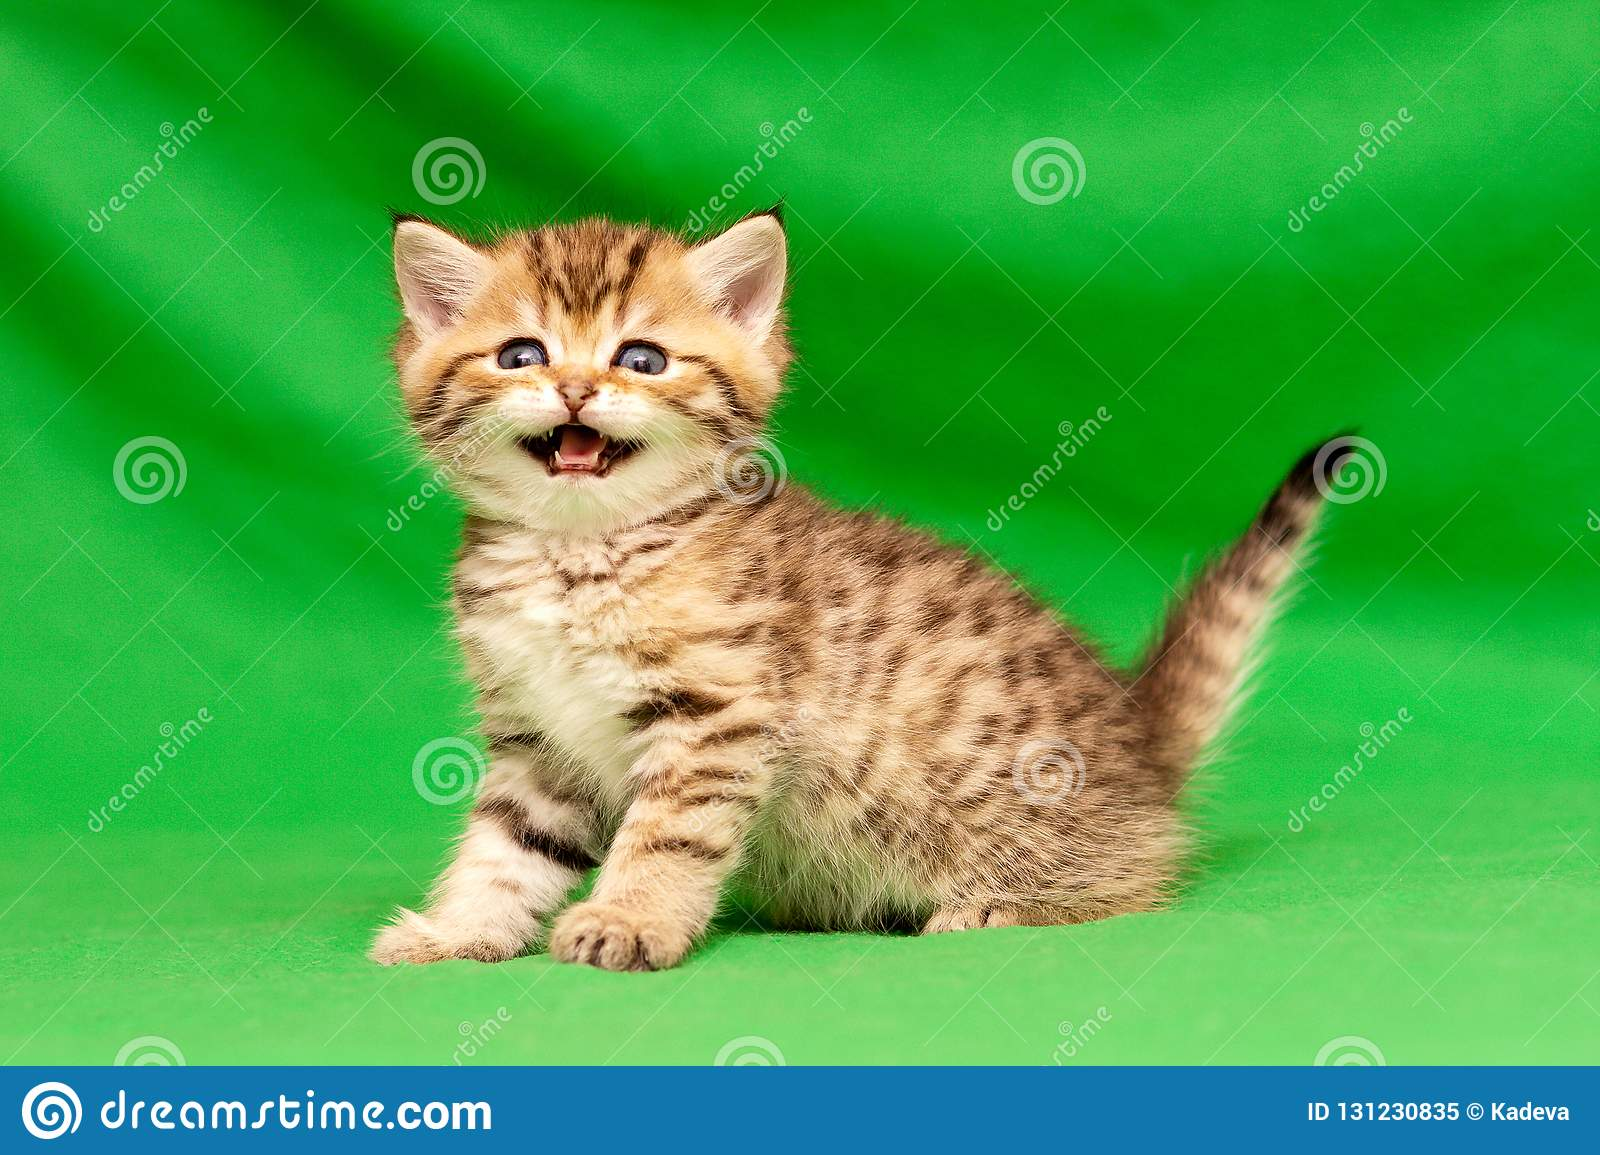 Funny little spotted Golden British kitten looks at the camera and says meow